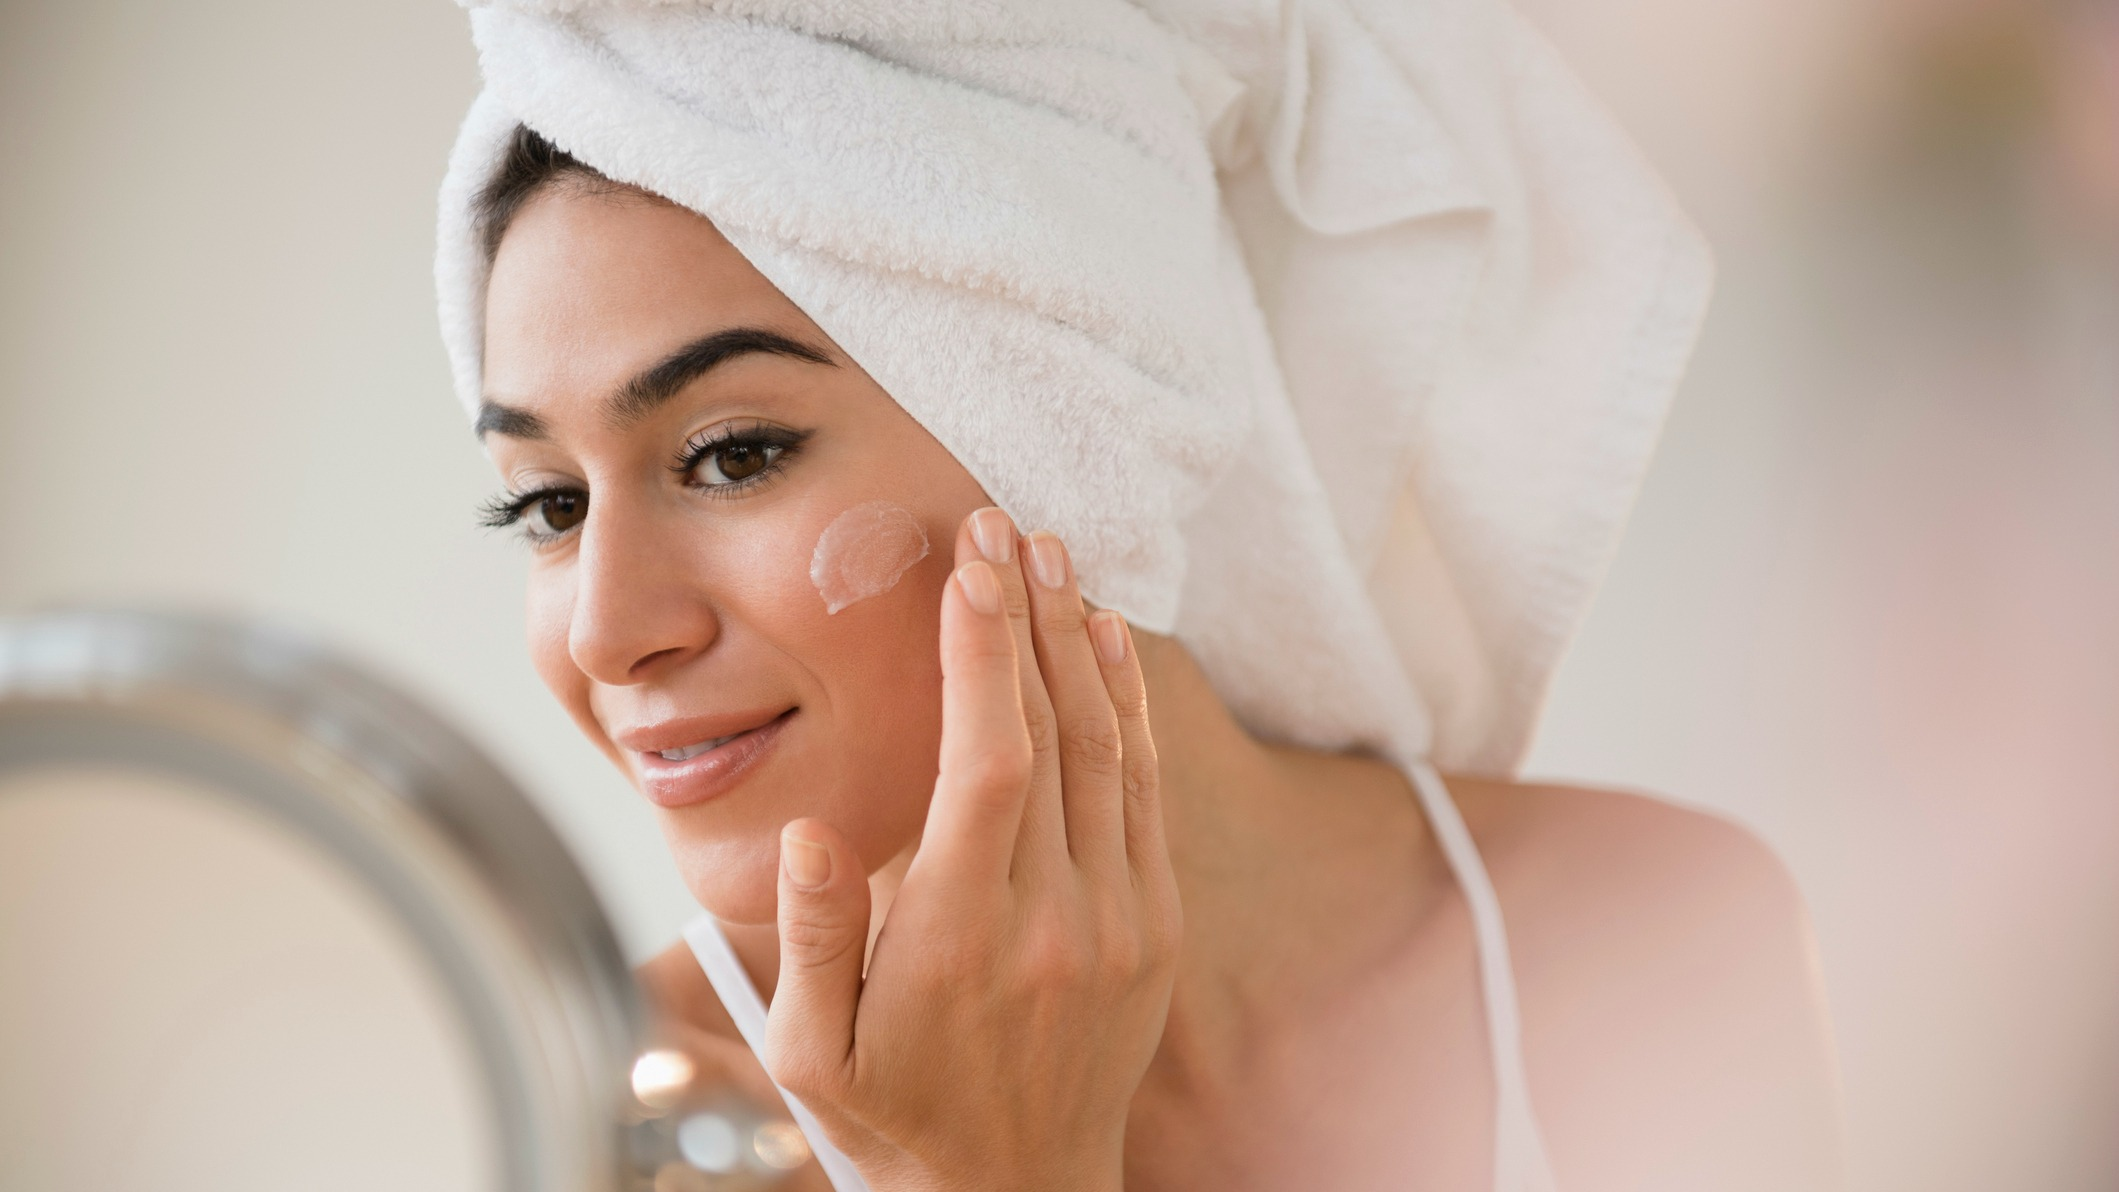 7 Tried-and-True Moisturizers That Won't Break You Out